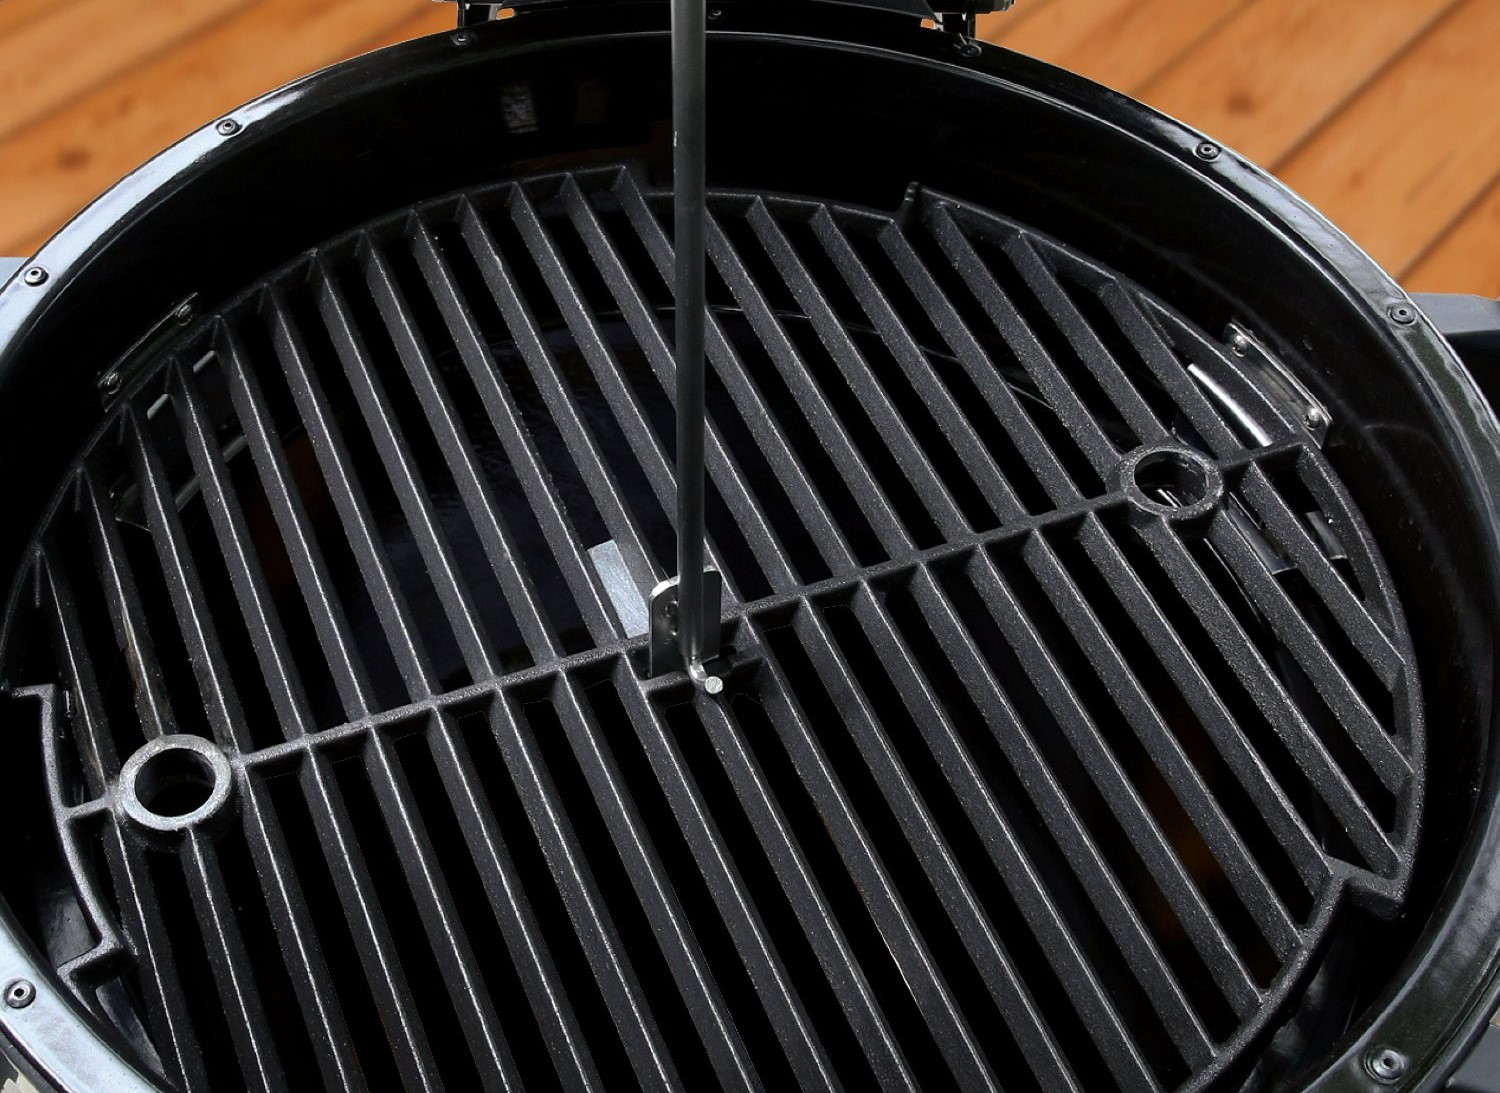 Best Kamado Grills For BBQ Ever Highly Rated